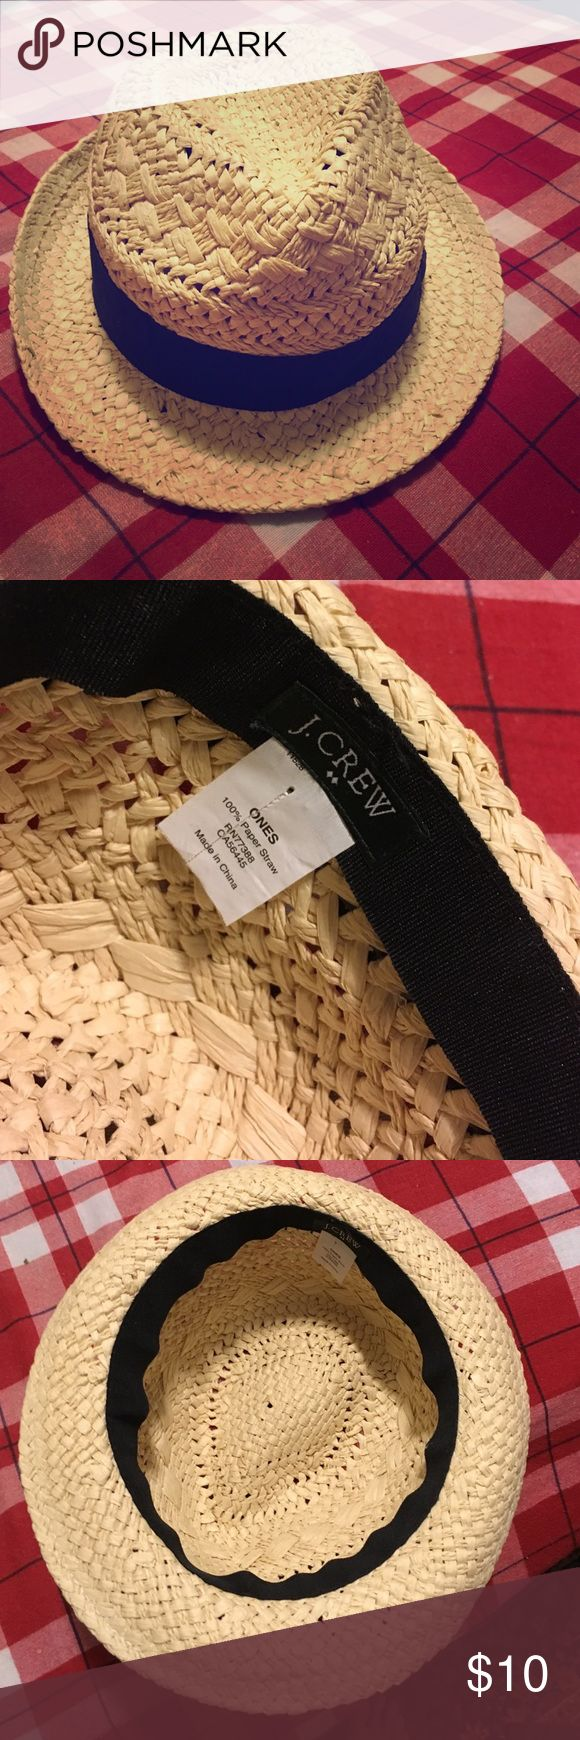 NWOT JCREW STRAW FEDORA Bought with the intention of it being a beach hat, just never wore it. J. Crew Accessories Hats